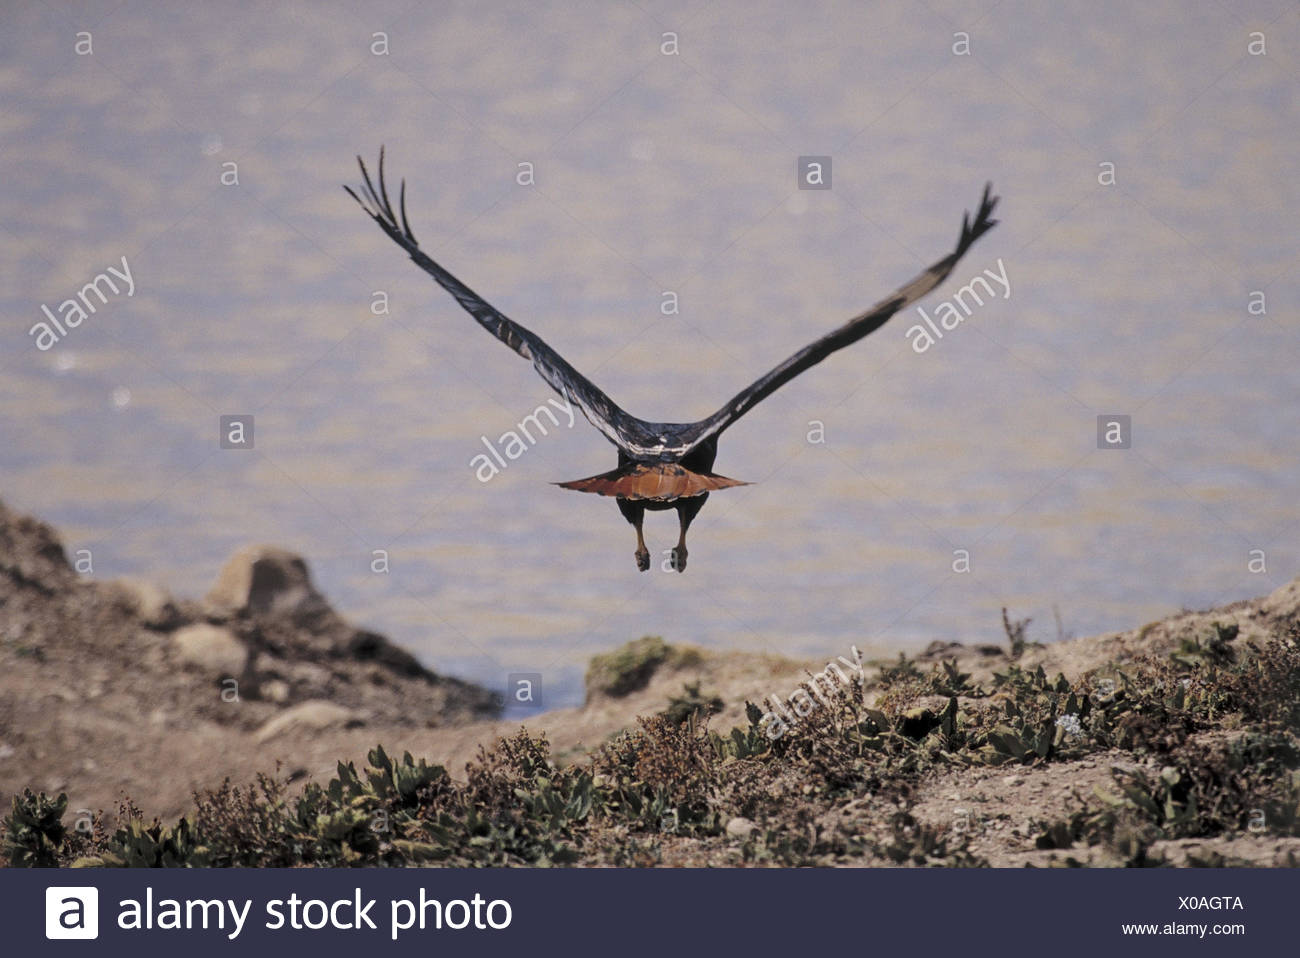 Ethiopia, Bale Mountains National Park, Senetee plateau, eagle, fly away, from the back, Africa, north-east, Africa, Ityopia, south Ethiopia, national park, scenery, nature reserve, animal, bird, bird prey, start, takeoff, wing, spread, wingspan - Stock Image